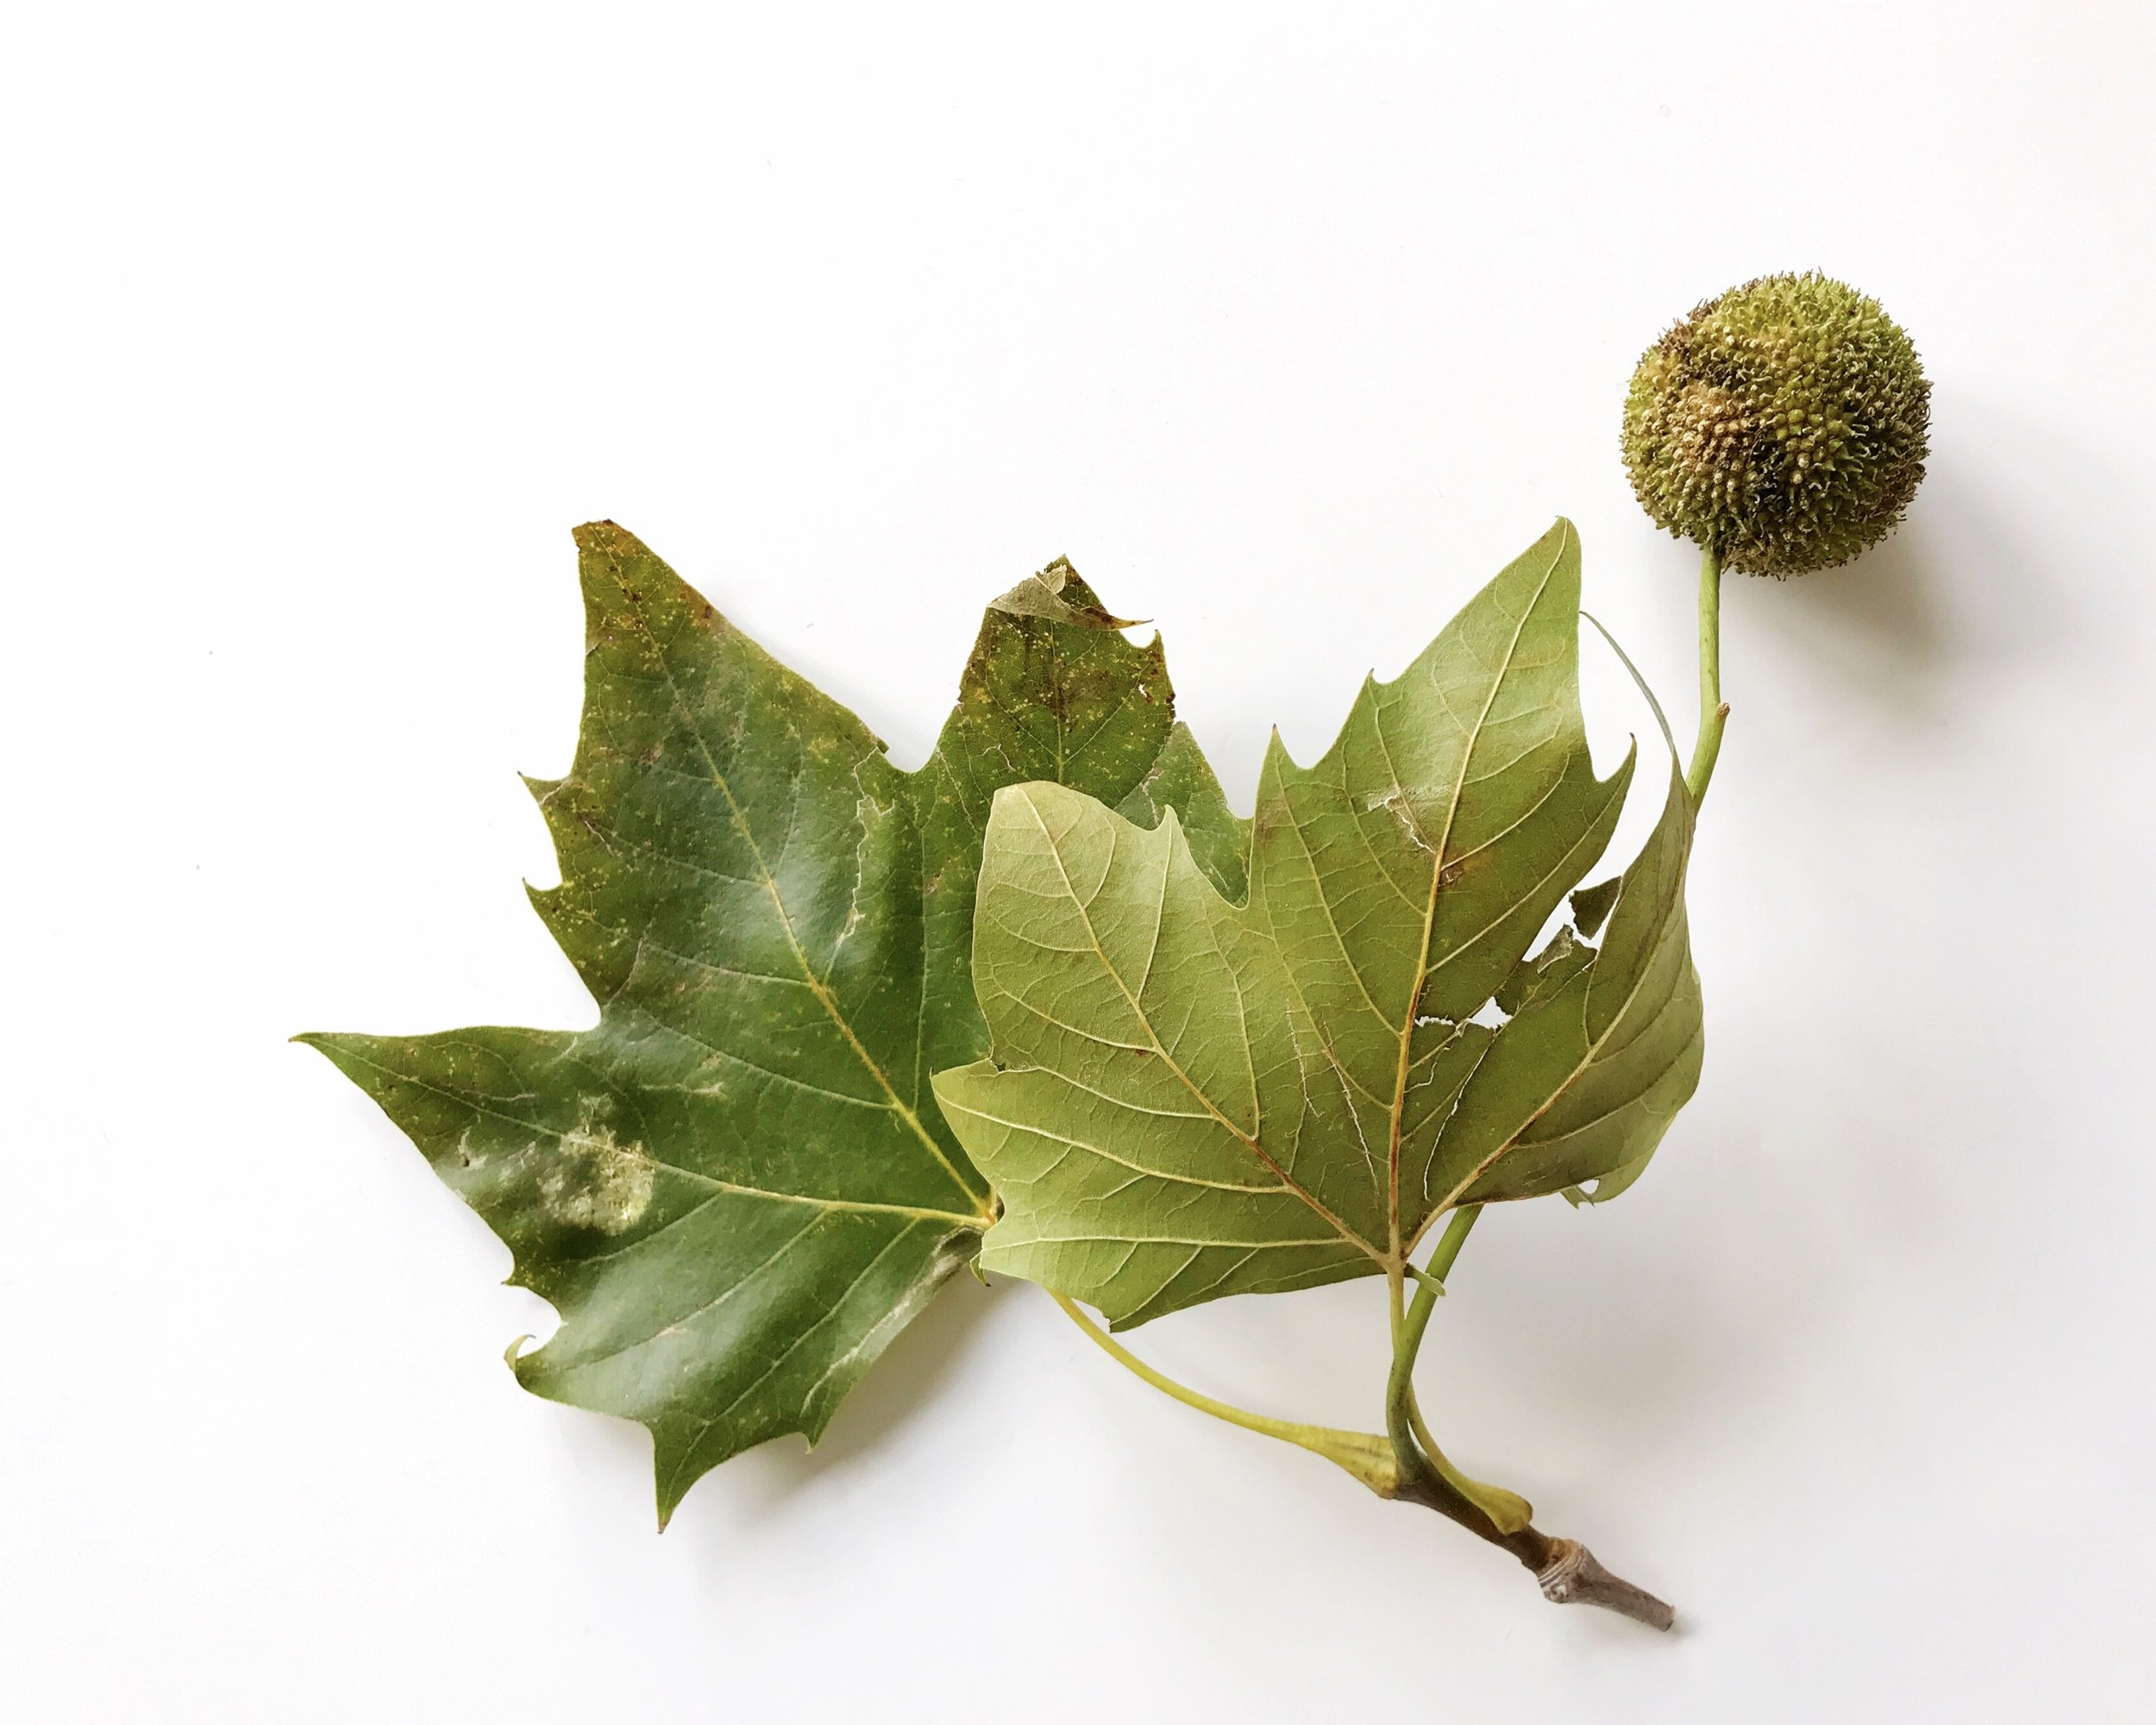 here's the photo I chose to draw - still life of london plane tree leaves and seed pod